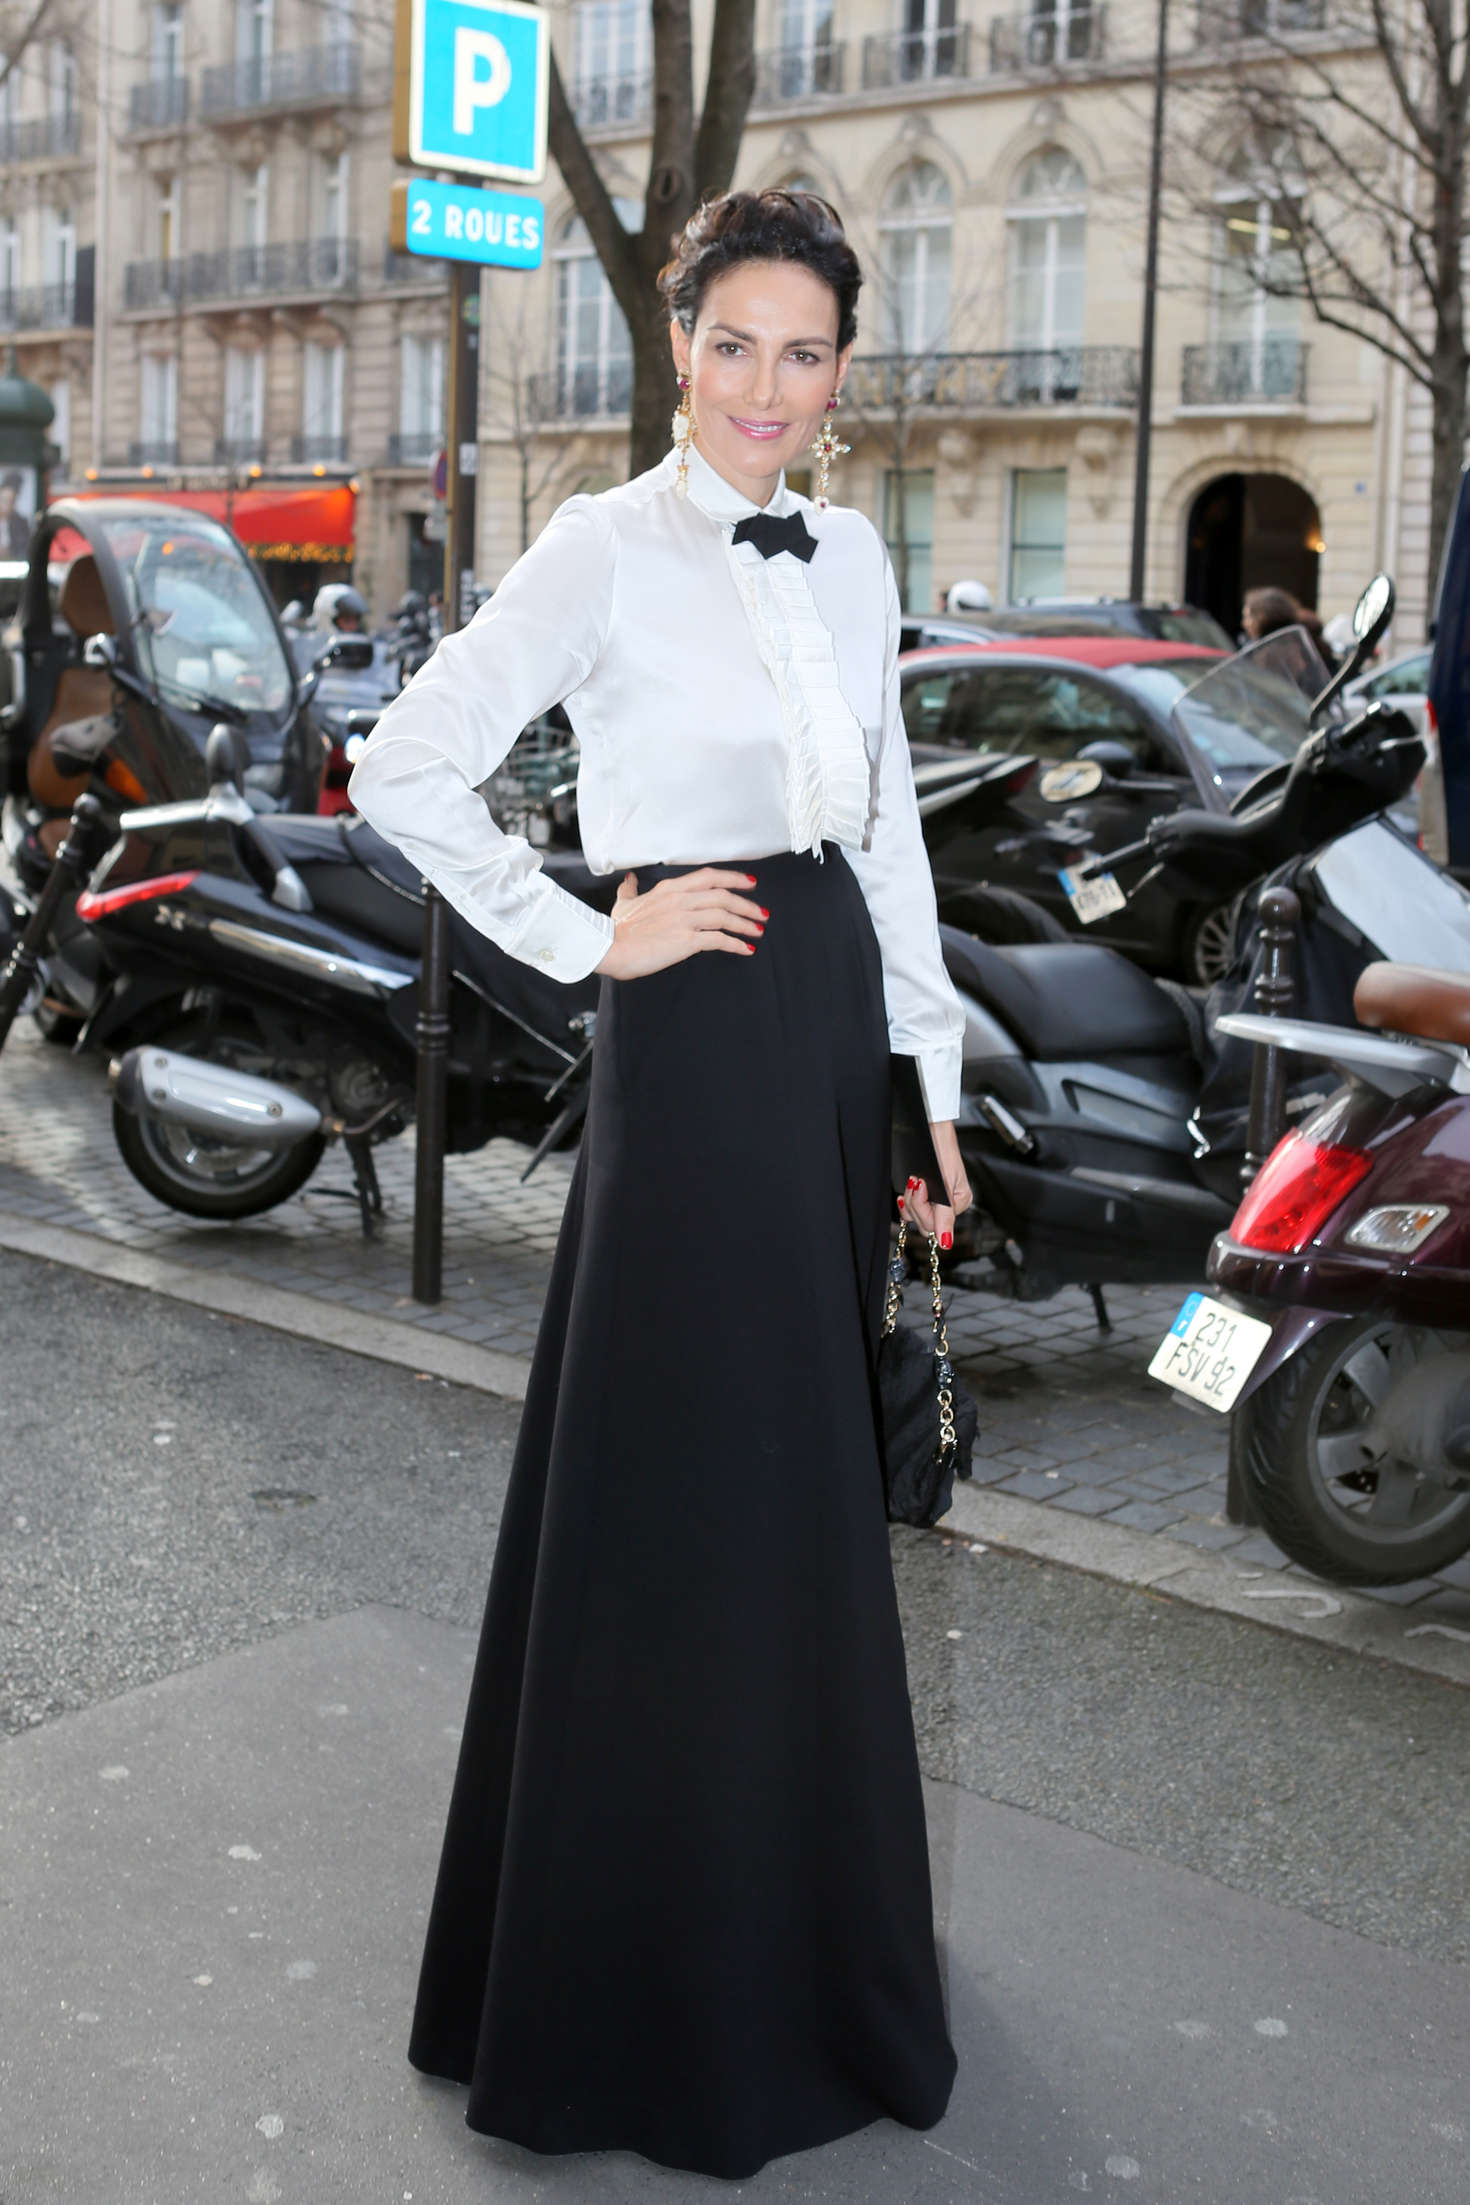 Adriana Abascal at Haute Couture Fashion Show Stephane Rolland SS 2016 in Paris